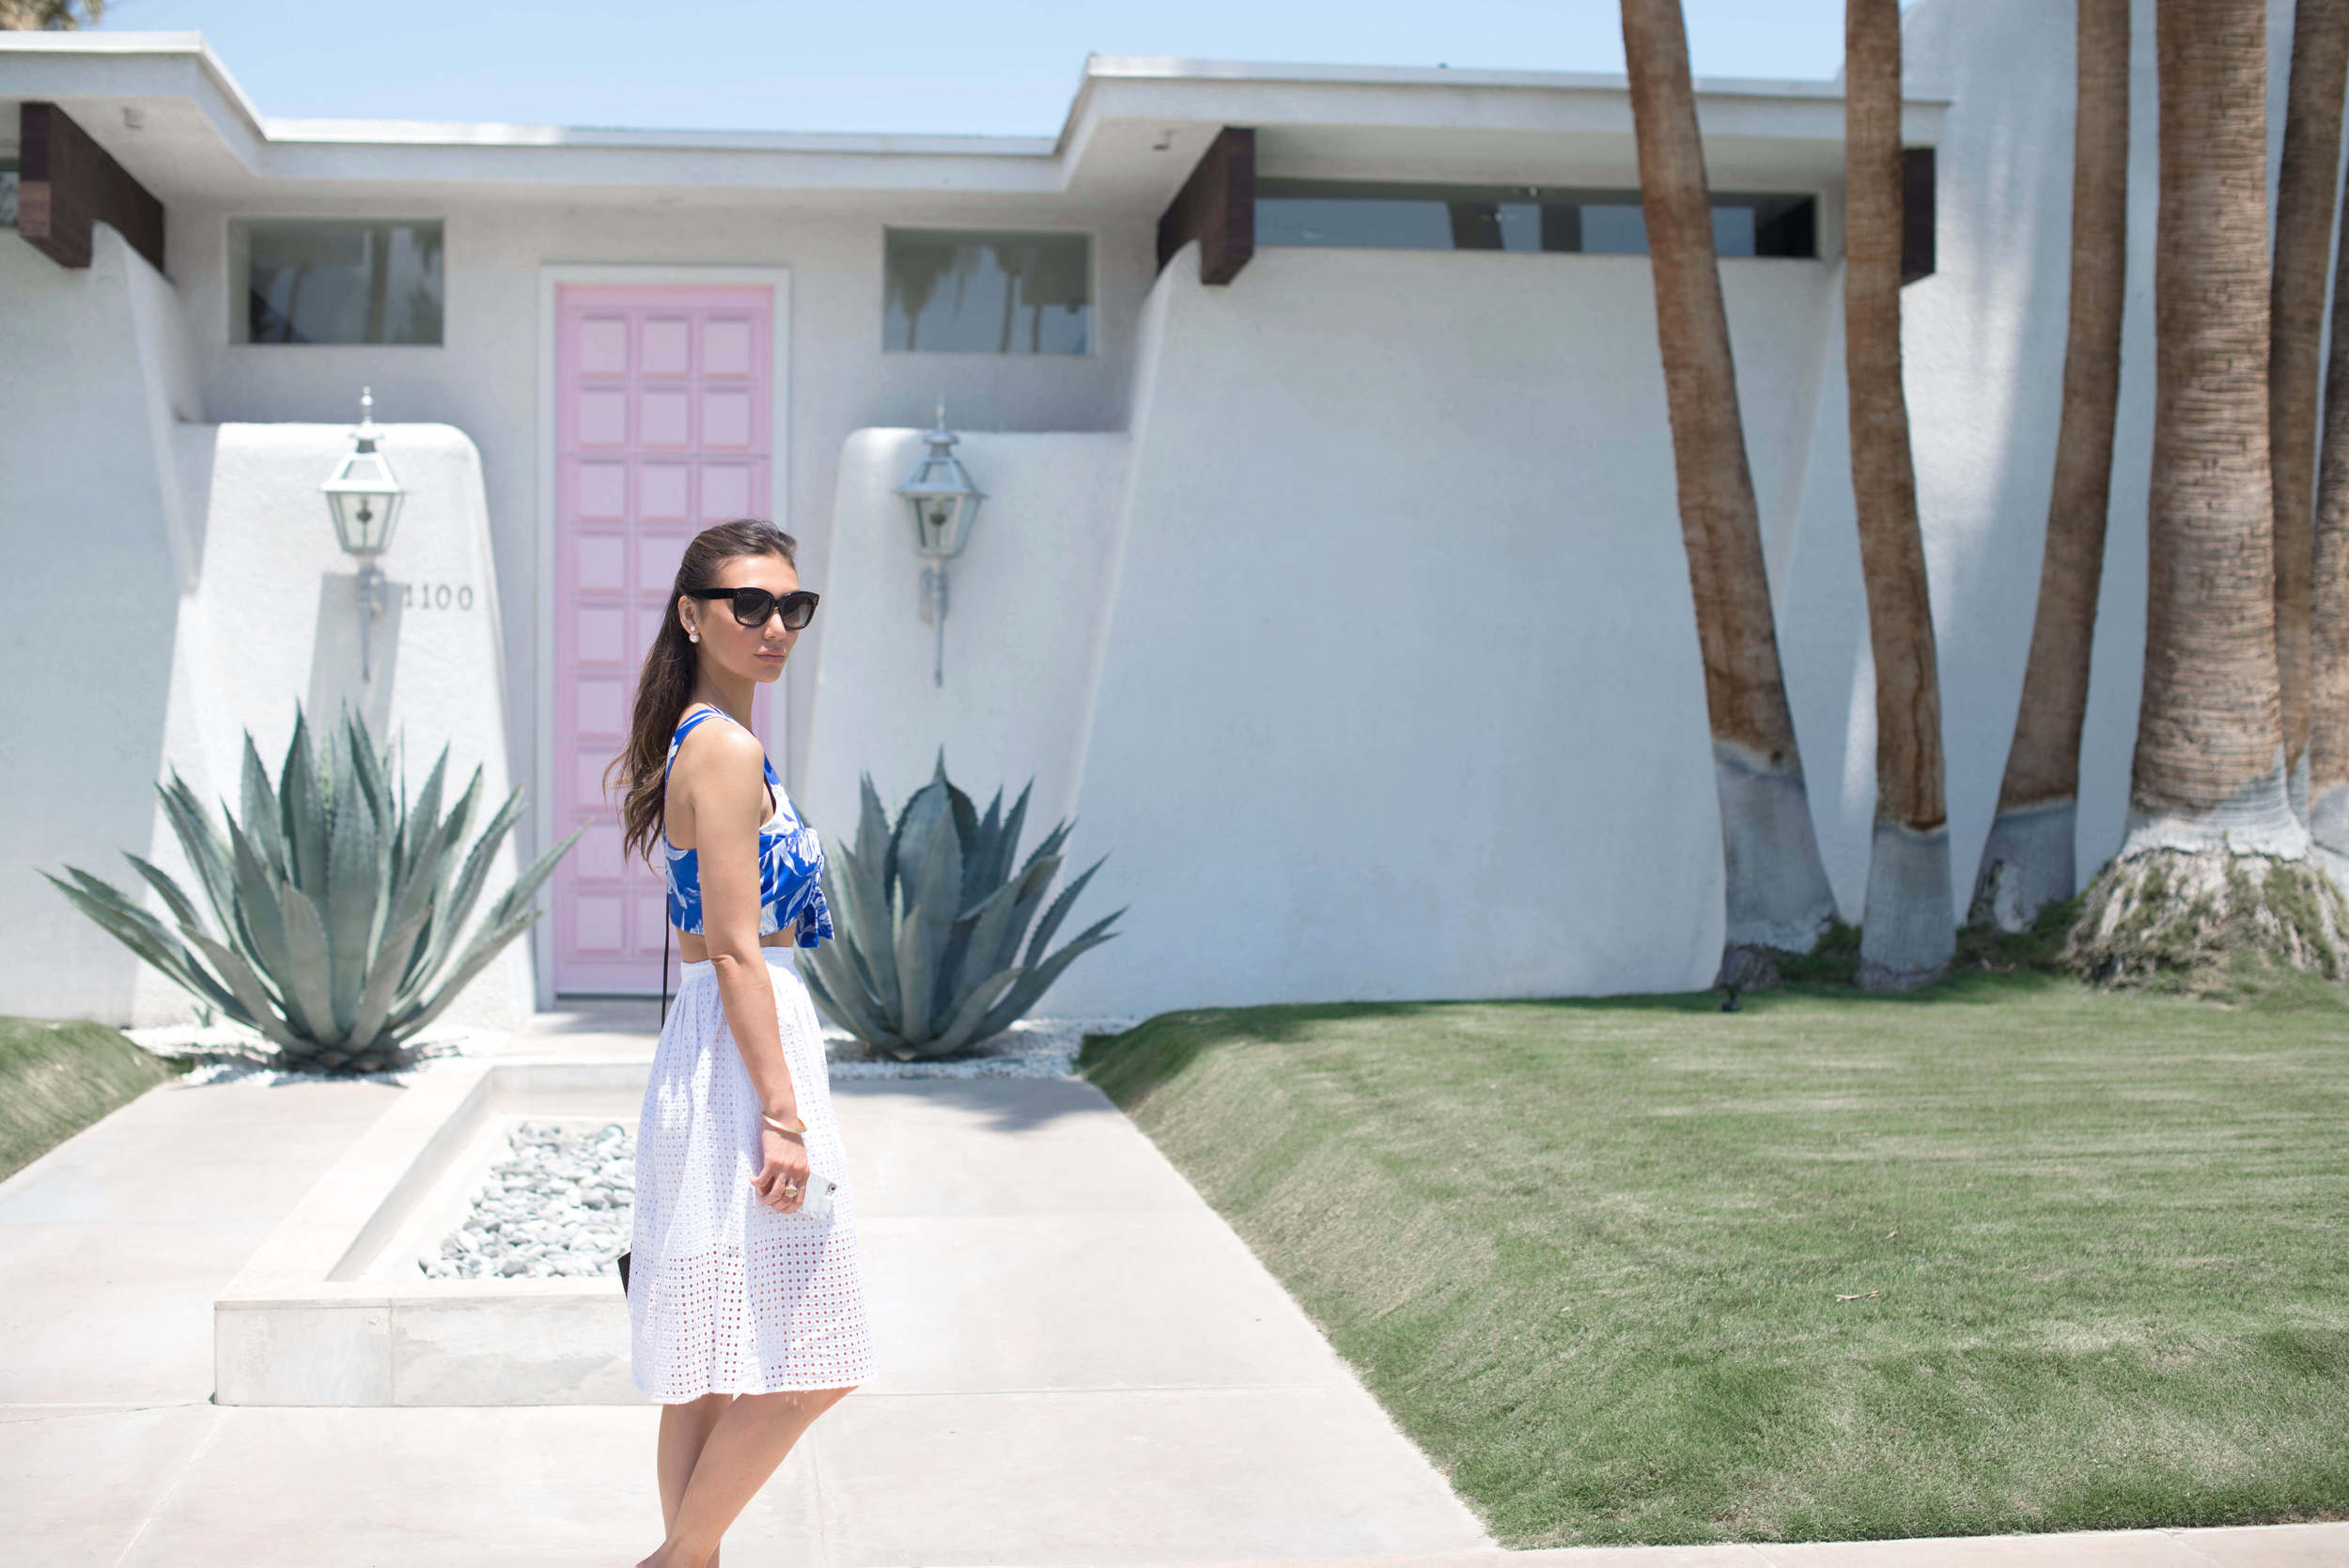 A girl in front of the pink door designed by Moises Esquenazi in Palm Springs